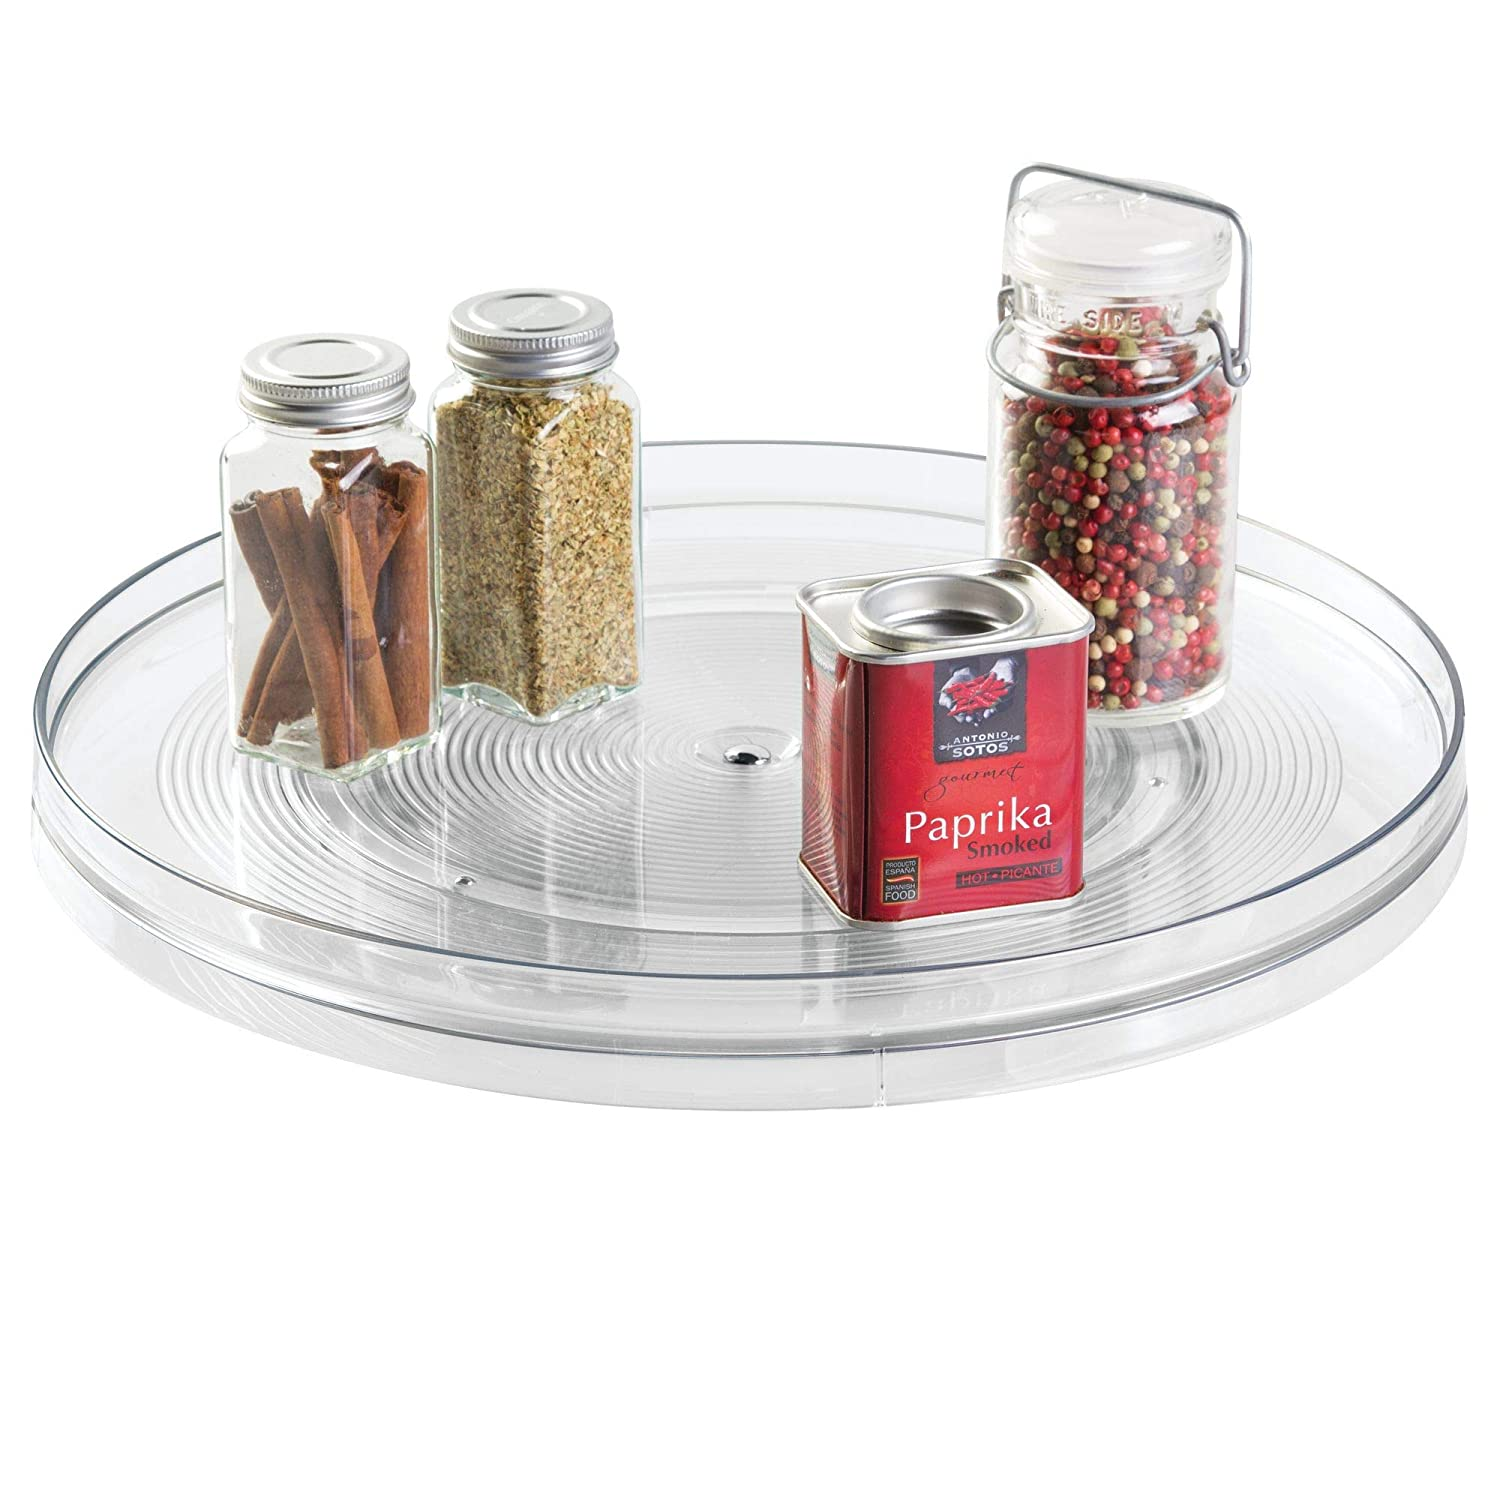 interDesign Linus Turntable Kitchen, Organization for Pantry, Countertop, Shelf, Table, Vanity, Bathroom, 14 Inches Clear